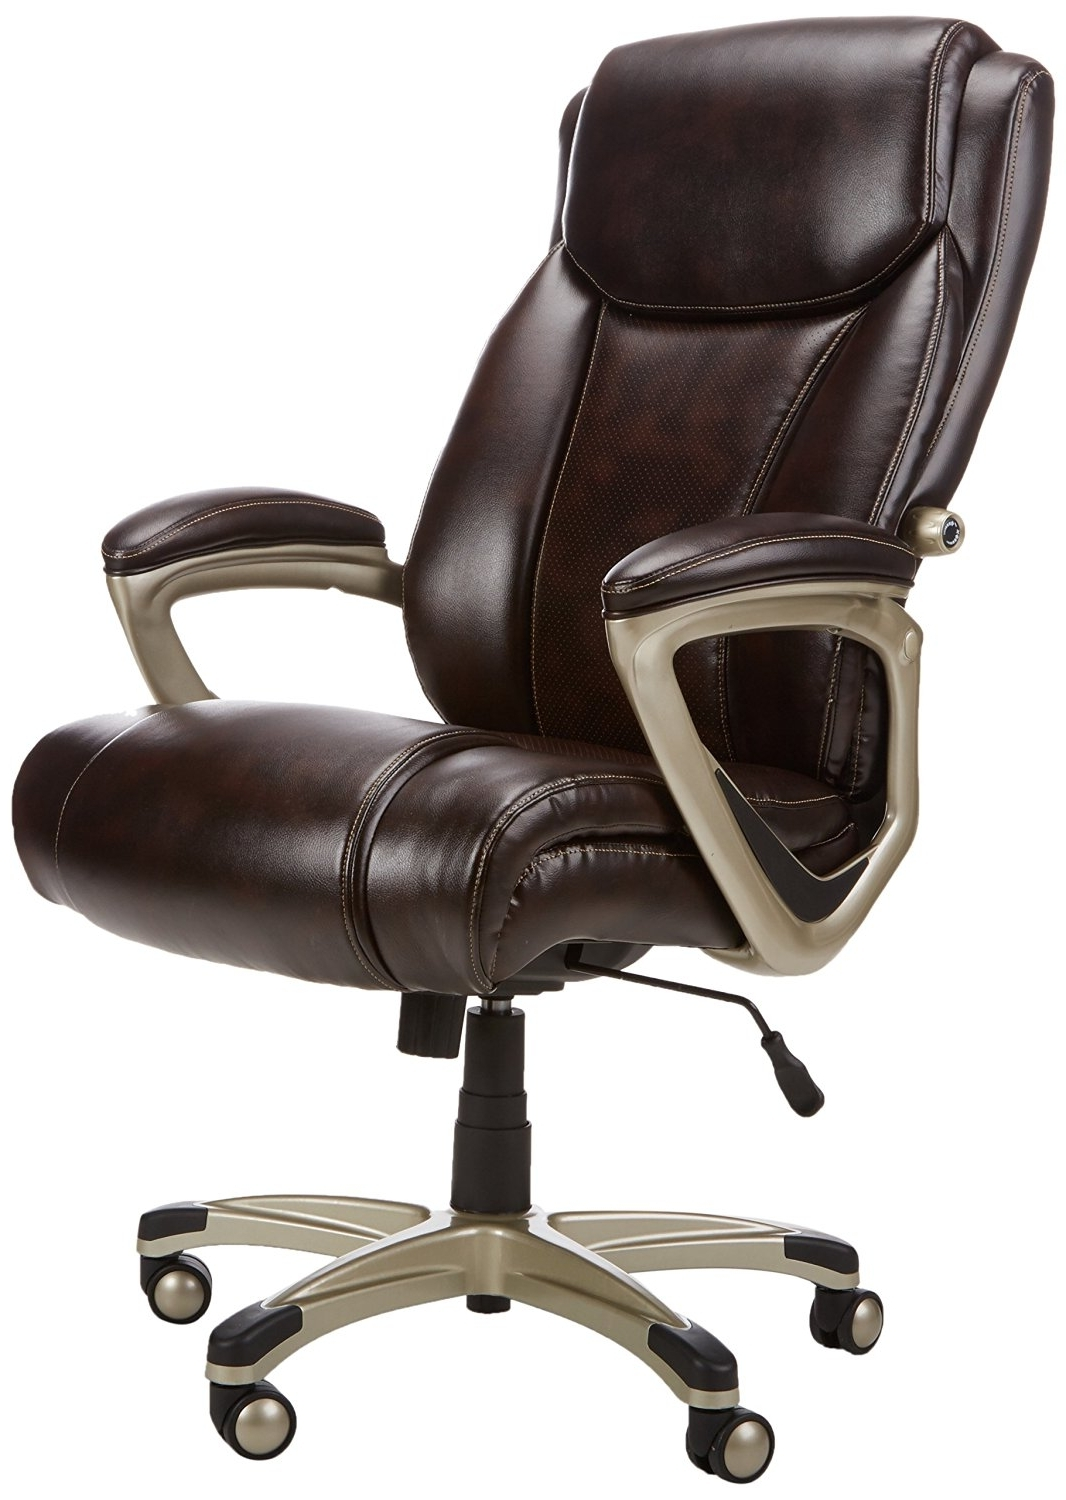 Big And Tall Executive Office Chairs Within 2019 10 Big & Tall Office Chairs For Extra Large Comfort (View 6 of 20)